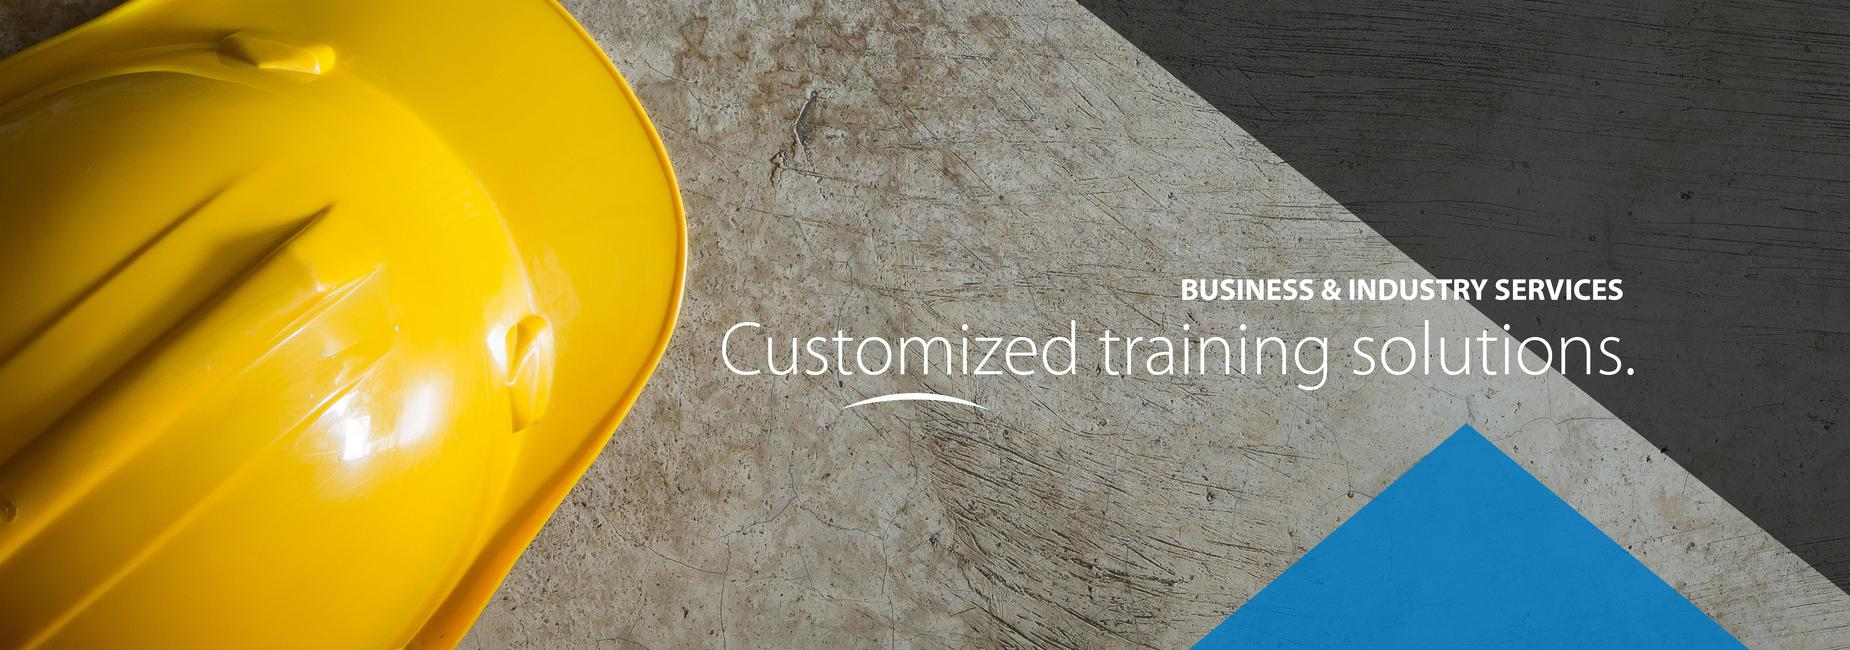 Image of a hard hat with text that reads: Business & Industry Services, Customized training solutions.